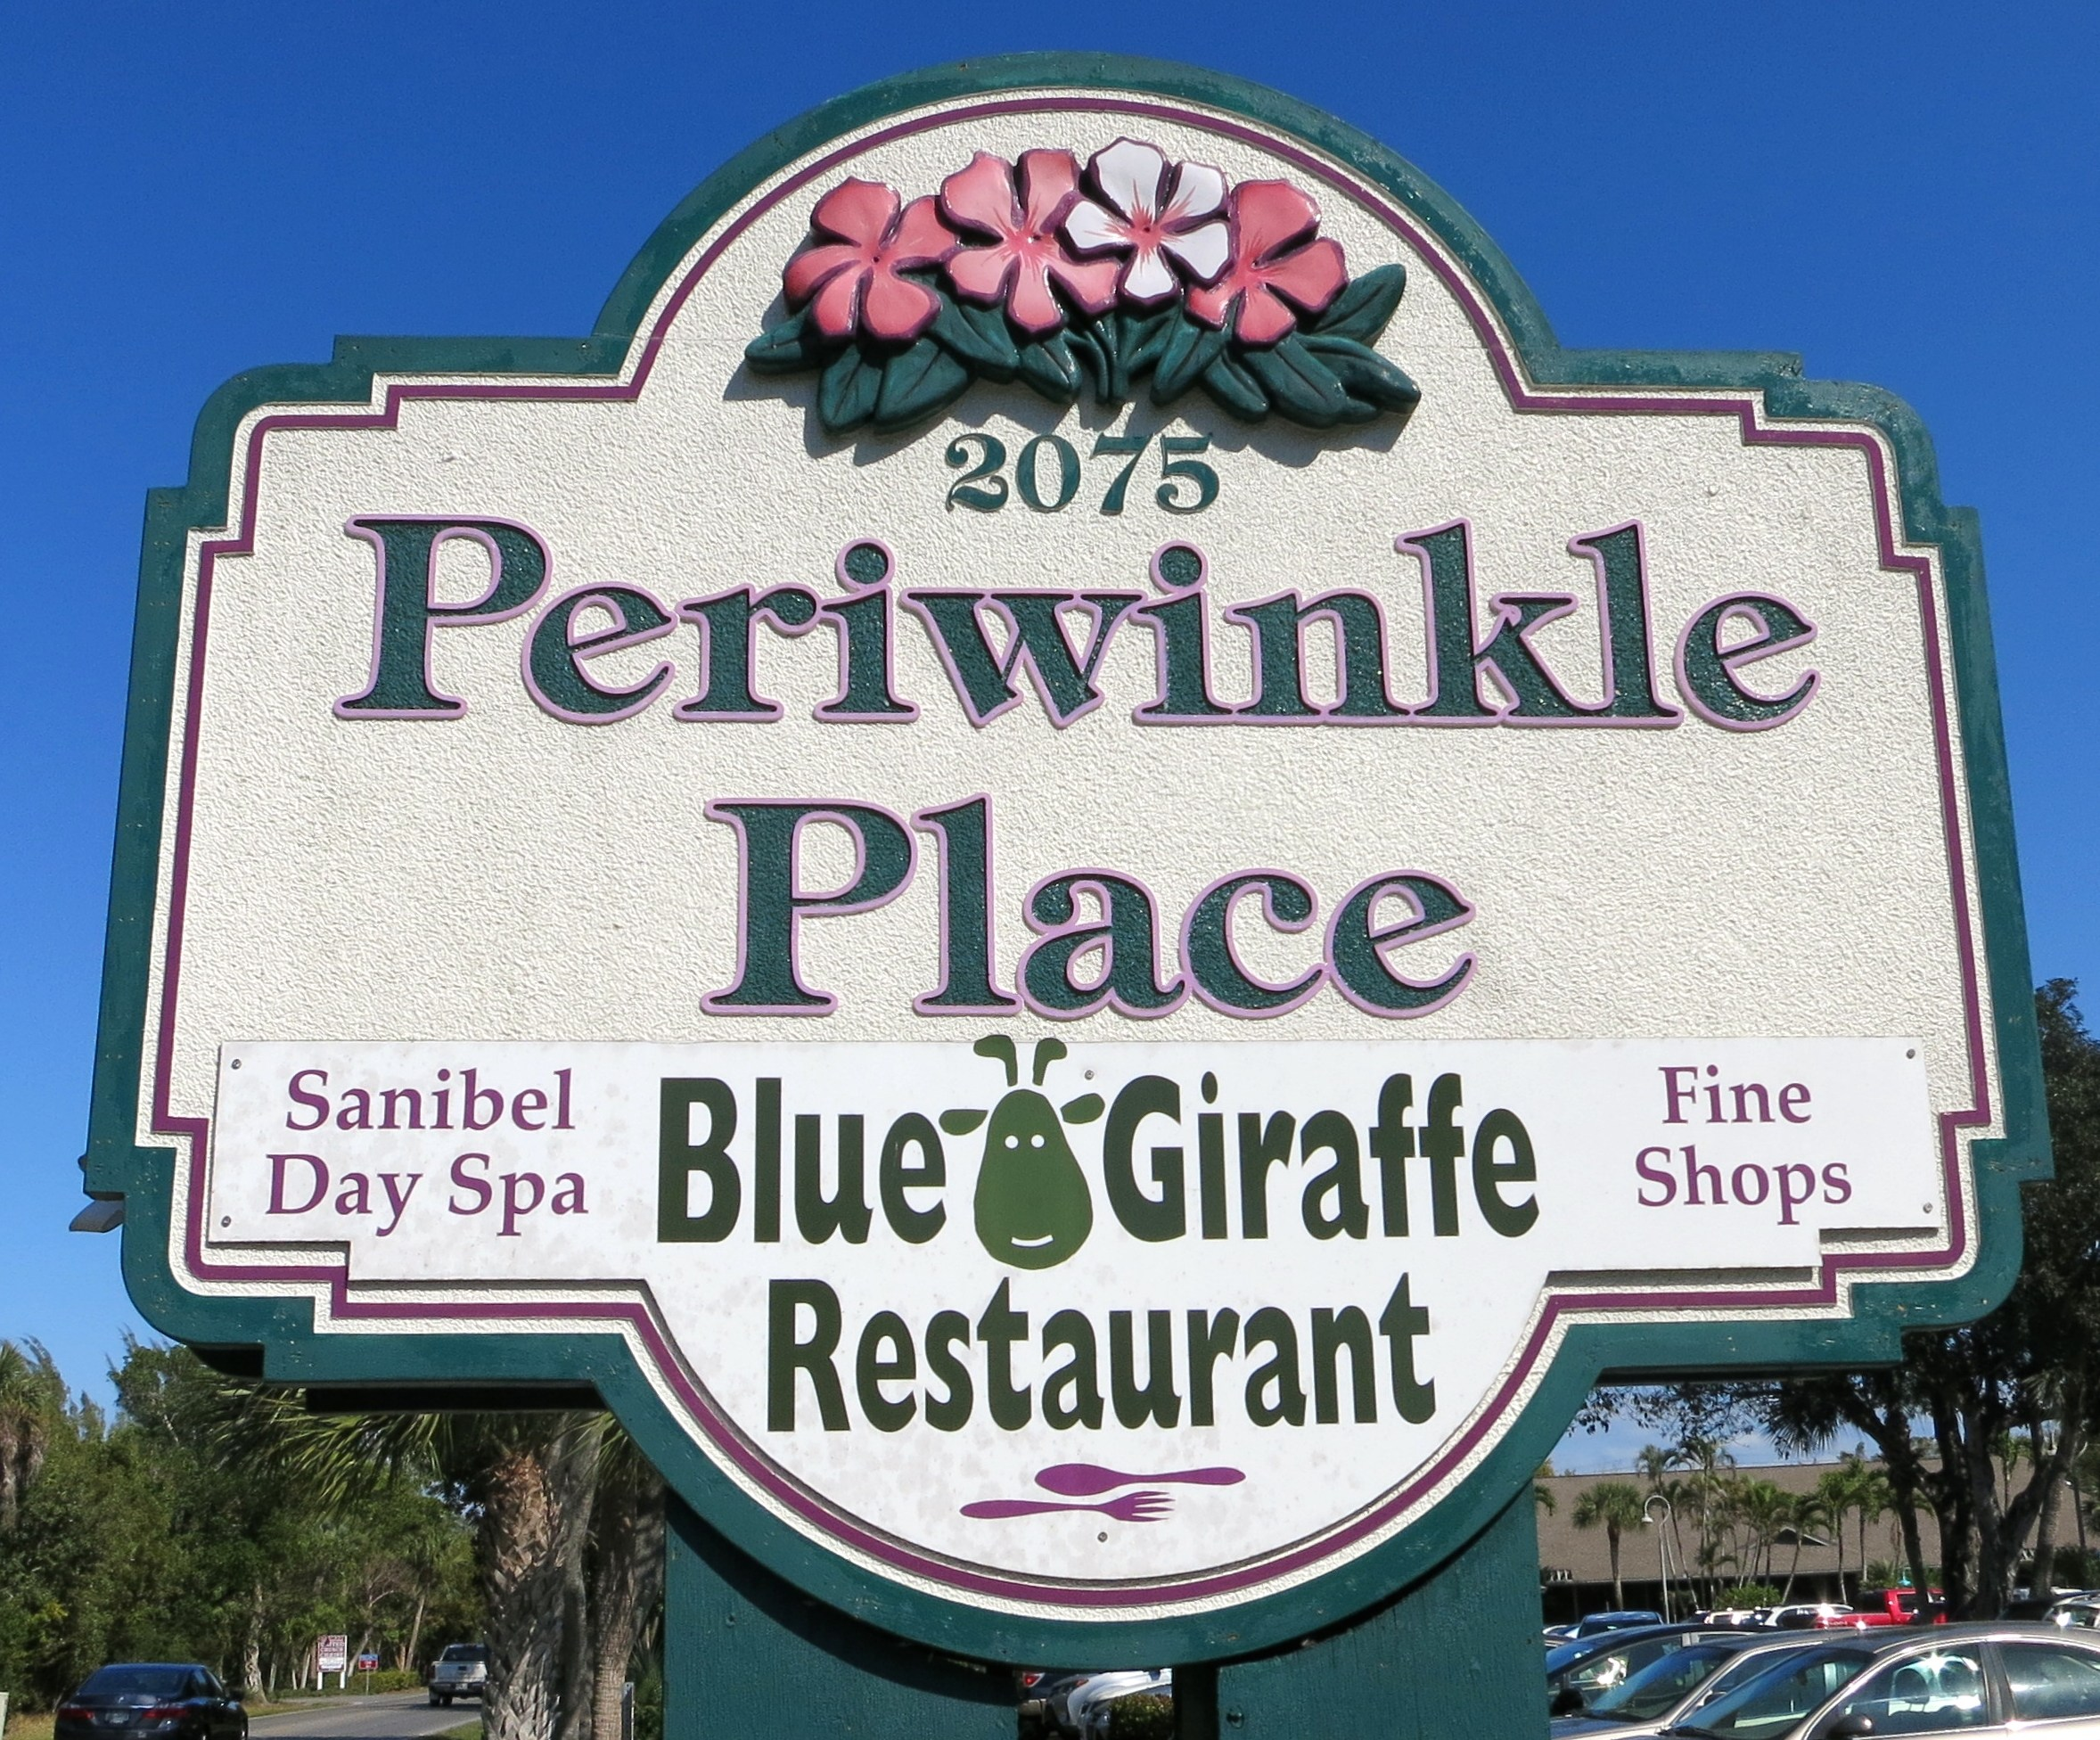 Periwinkle Place Shops